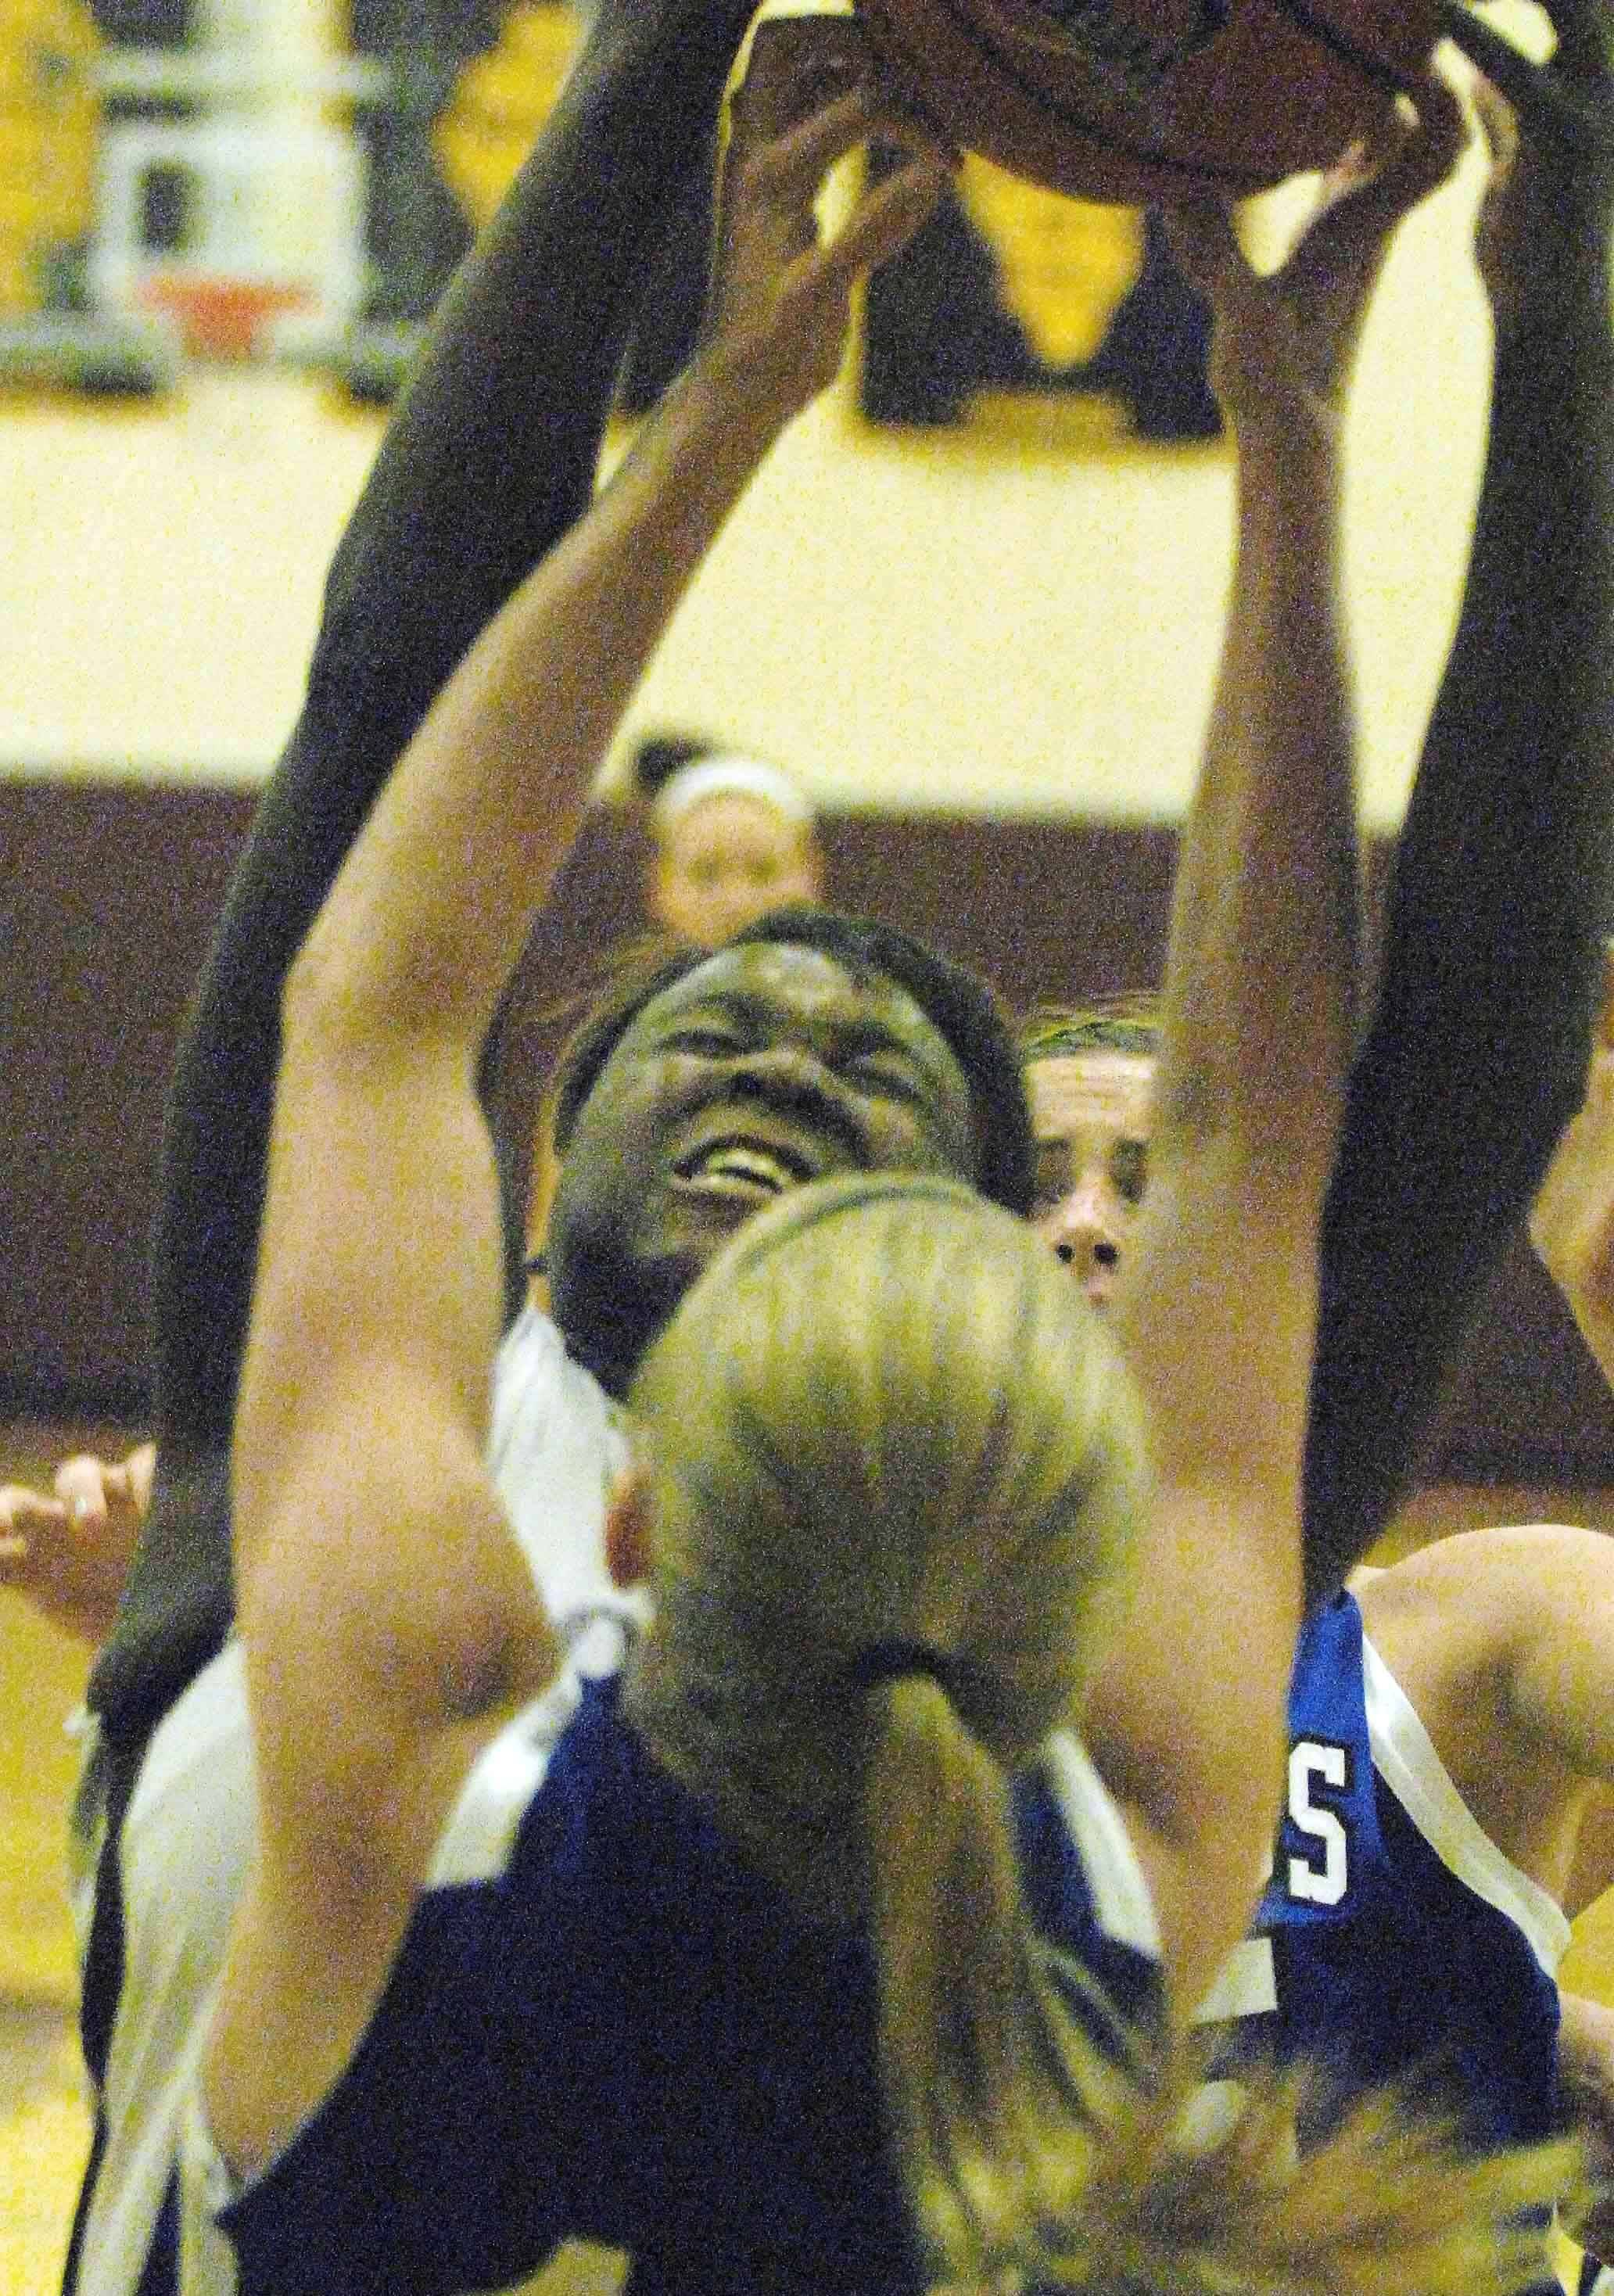 PAUL MICHNA/Pmichna@dailyherald.comTianna Brown of Montini fights off a Columbus defender for a rebound during the Montini vs. Columbus game at Montini Tuesday.